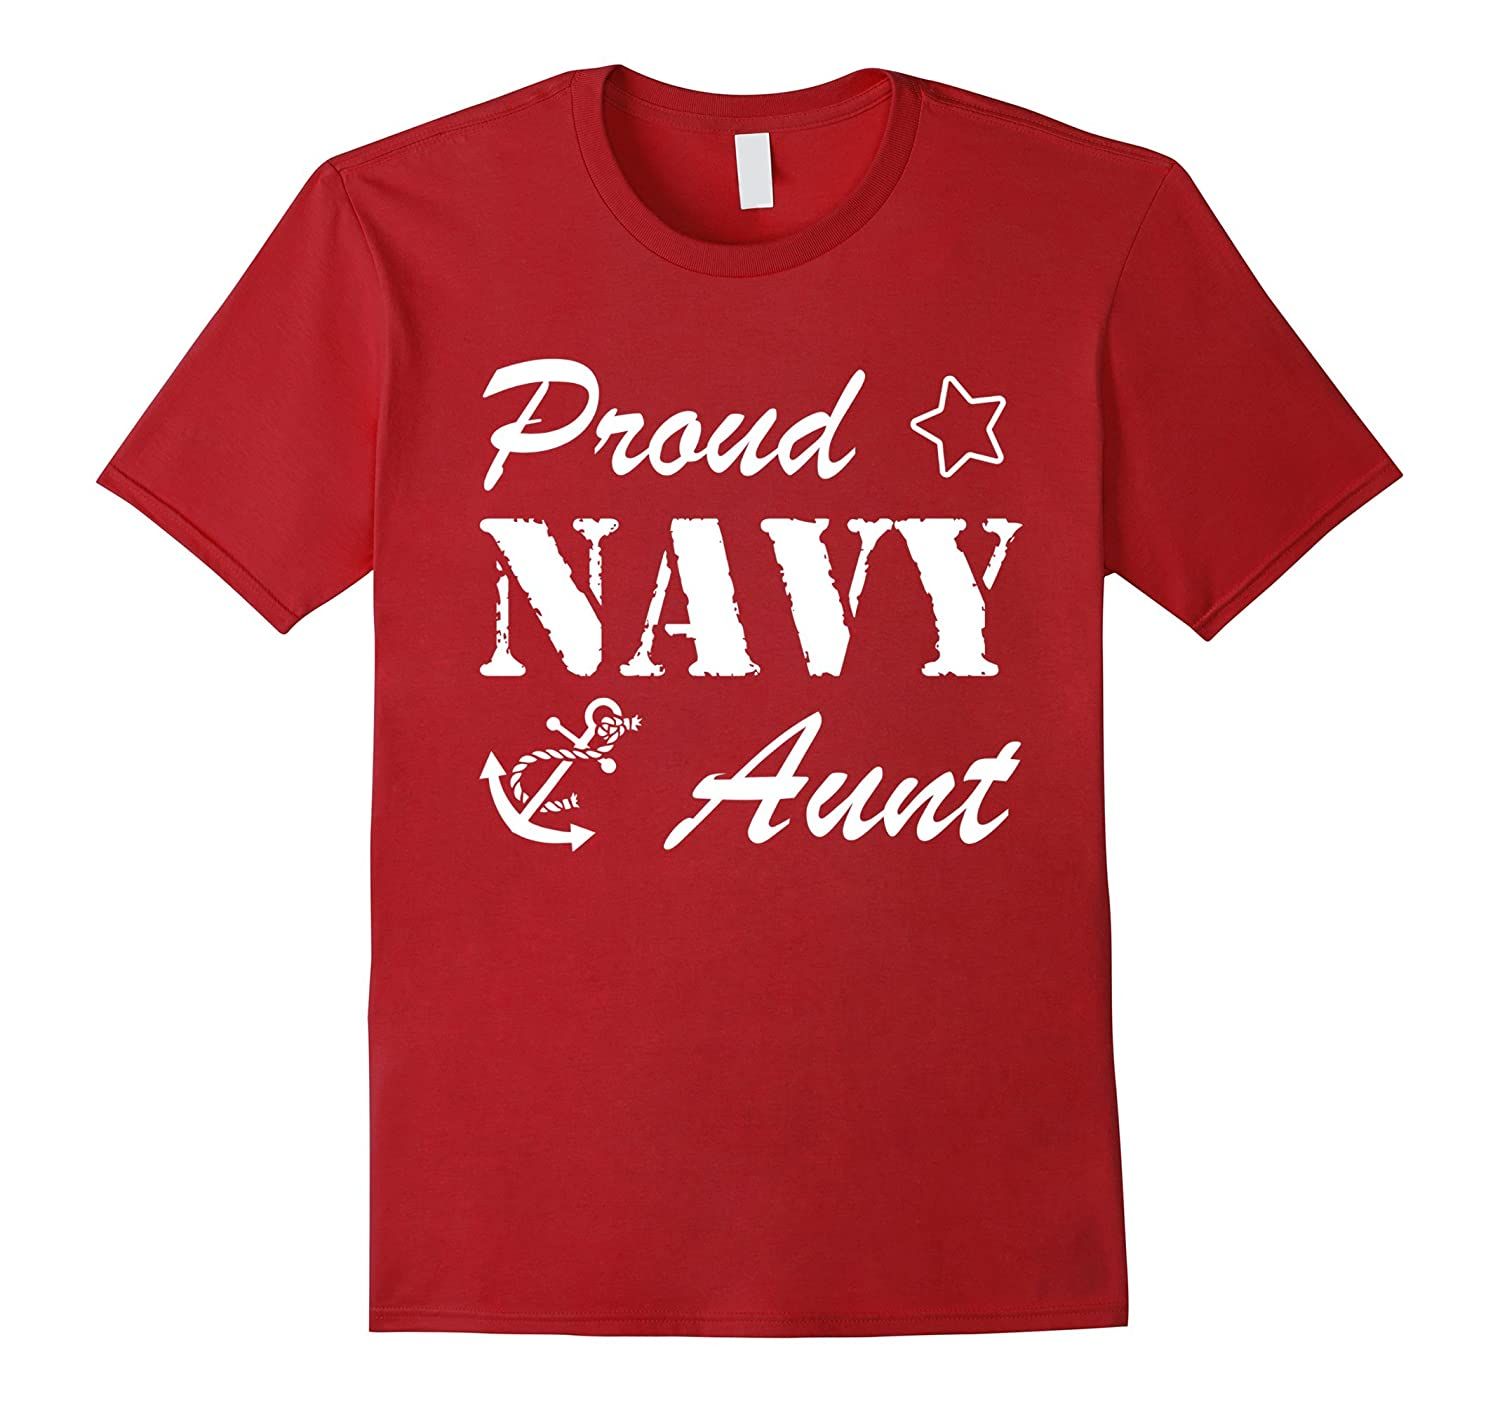 Best Gift for Army Aunt – Proud Navy Aunt T-shirt